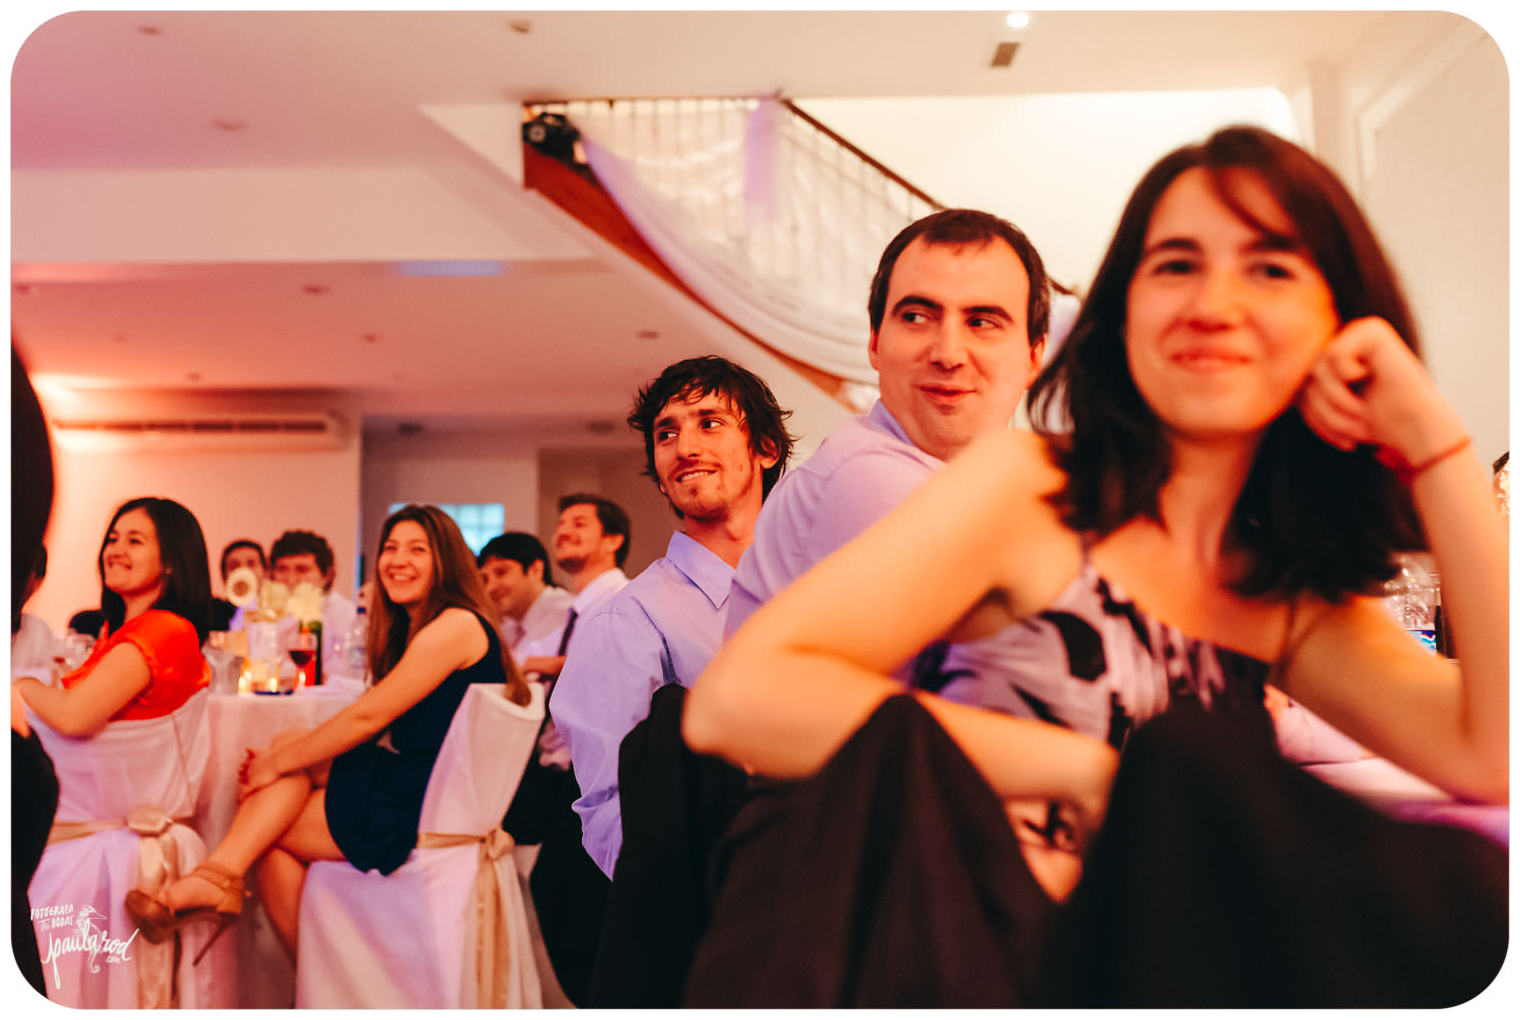 fotografia-documental-de-bodas-6.jpg